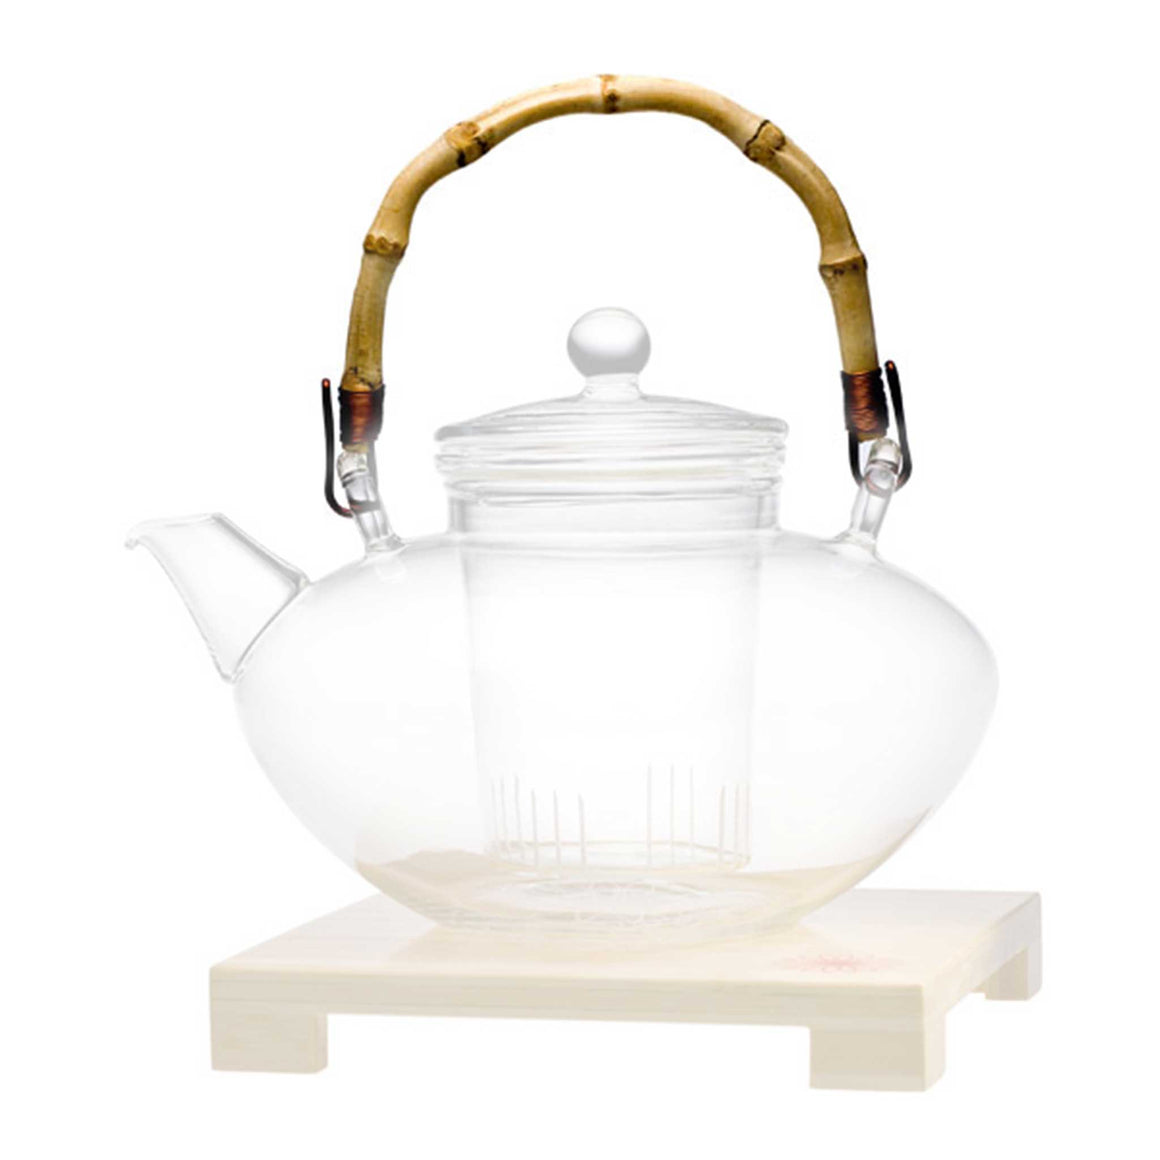 teaposy bamboo handle for tea for more teapot